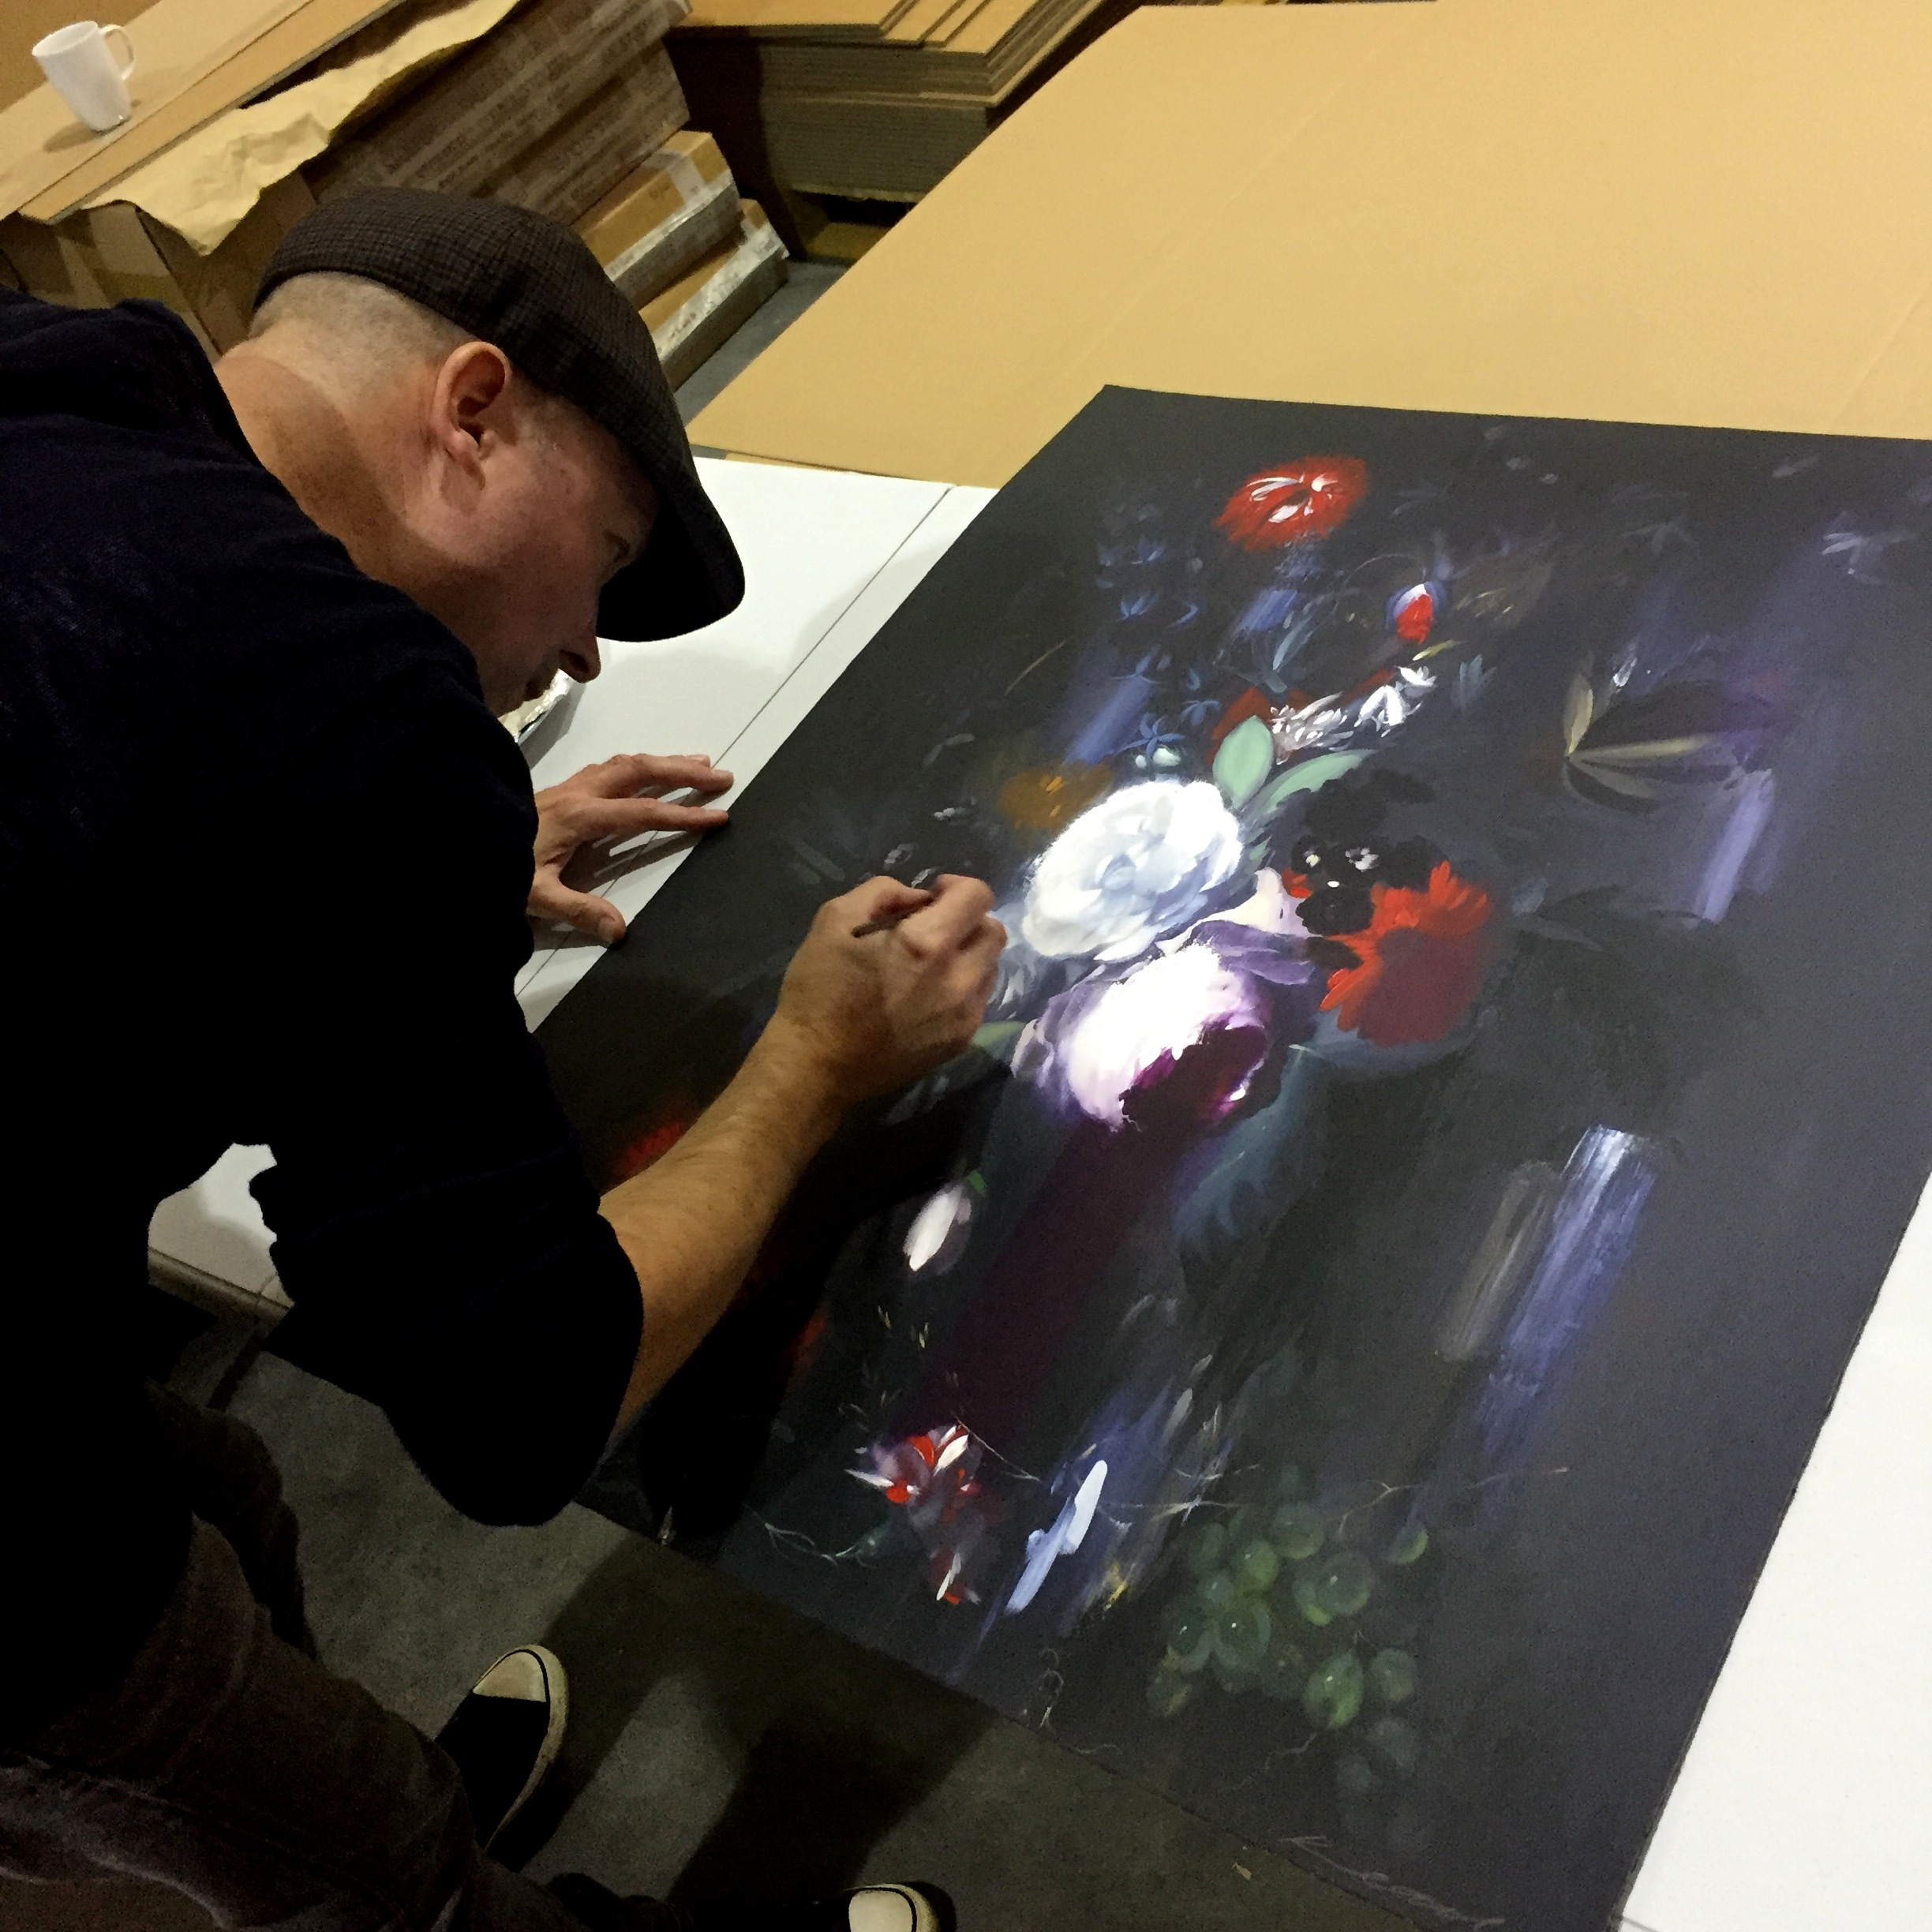 Chris Kettle Hand-Finishing Brand New Prints At Art Republic HQ In Hove